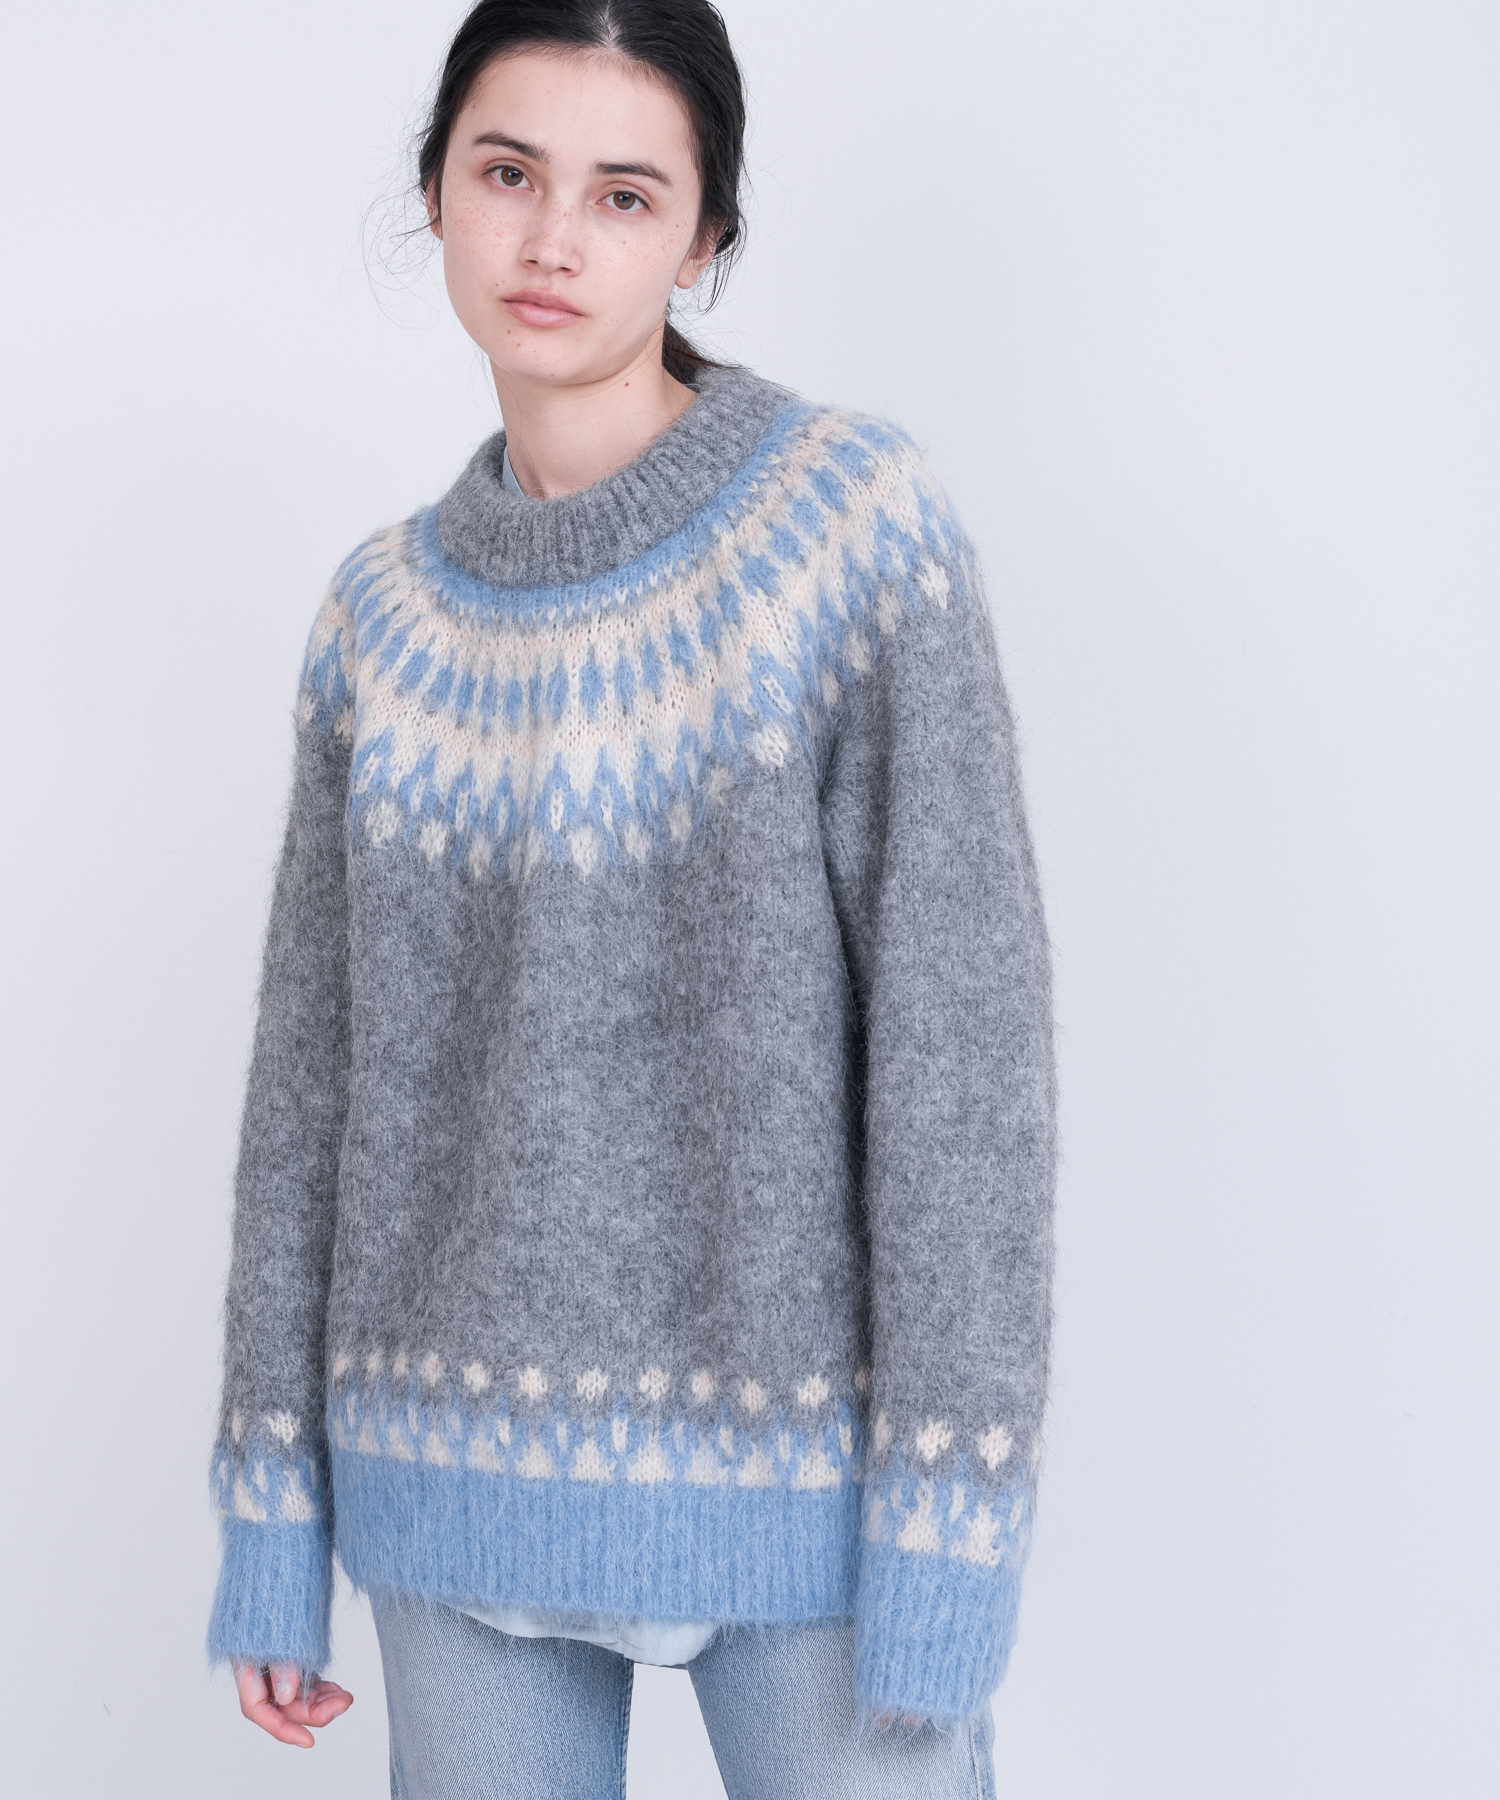 Alpaca Jacquard Crew Neck Knit - GRAY